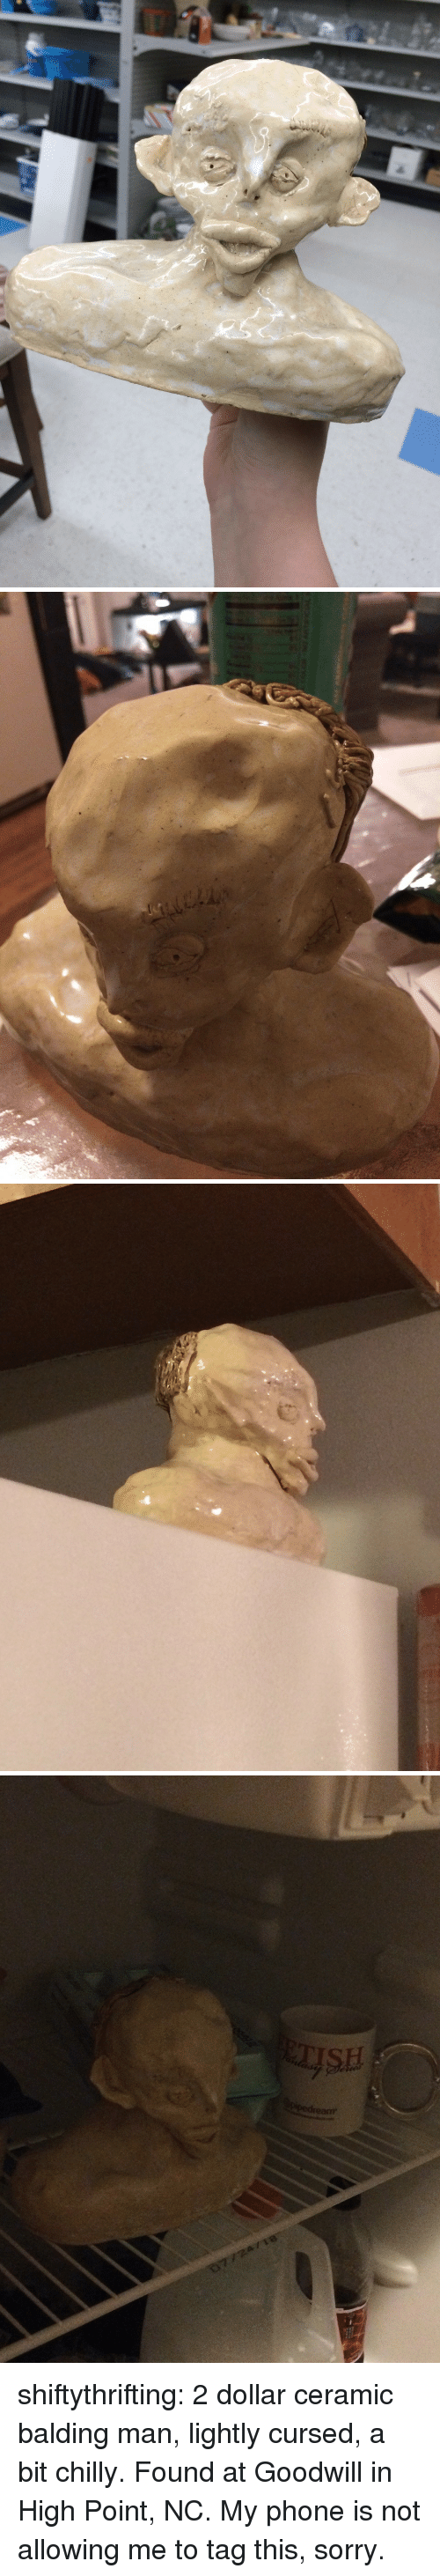 Phone, Sorry, and Tumblr: SH shiftythrifting:  2 dollar ceramic balding man, lightly cursed, a bit chilly. Found at Goodwill in High Point, NC. My phone is not allowing me to tag this, sorry.